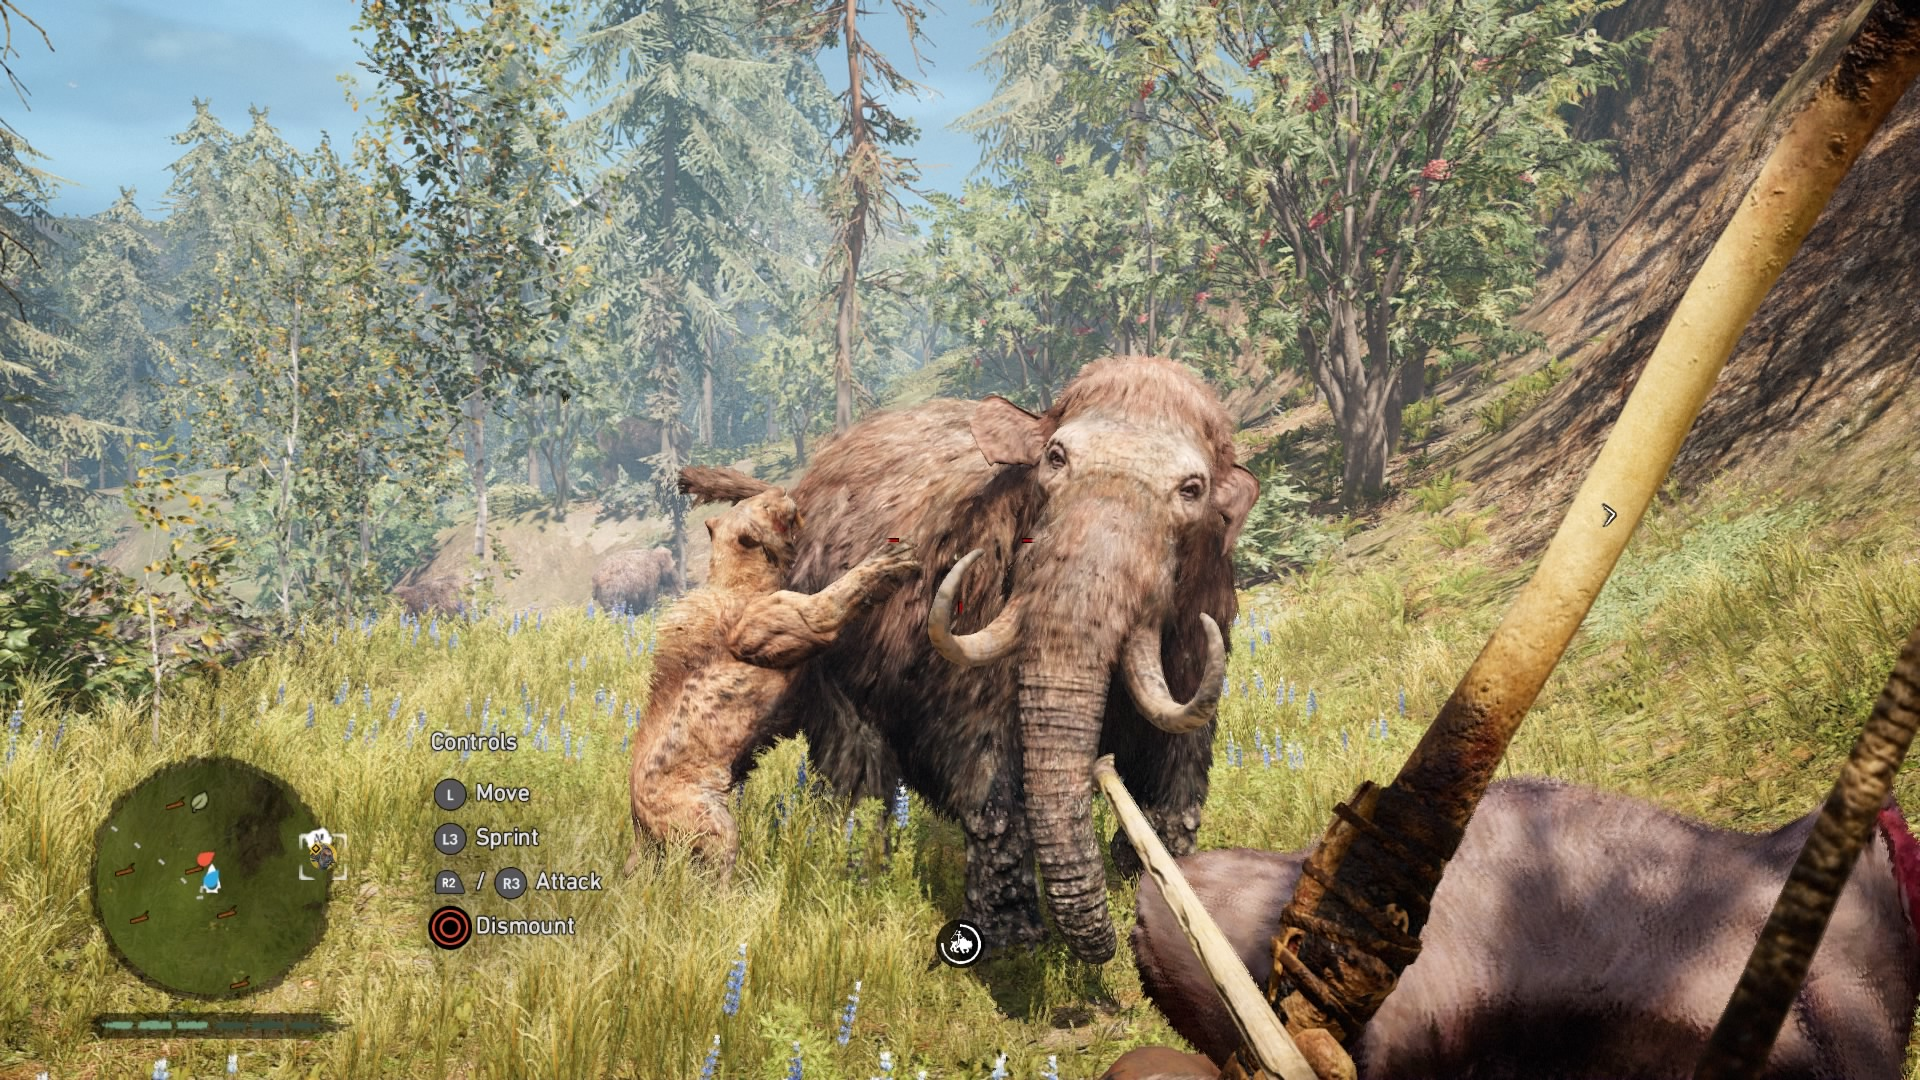 Far Cry Primal Update 1 01 Improves Performance & Fixes Issues